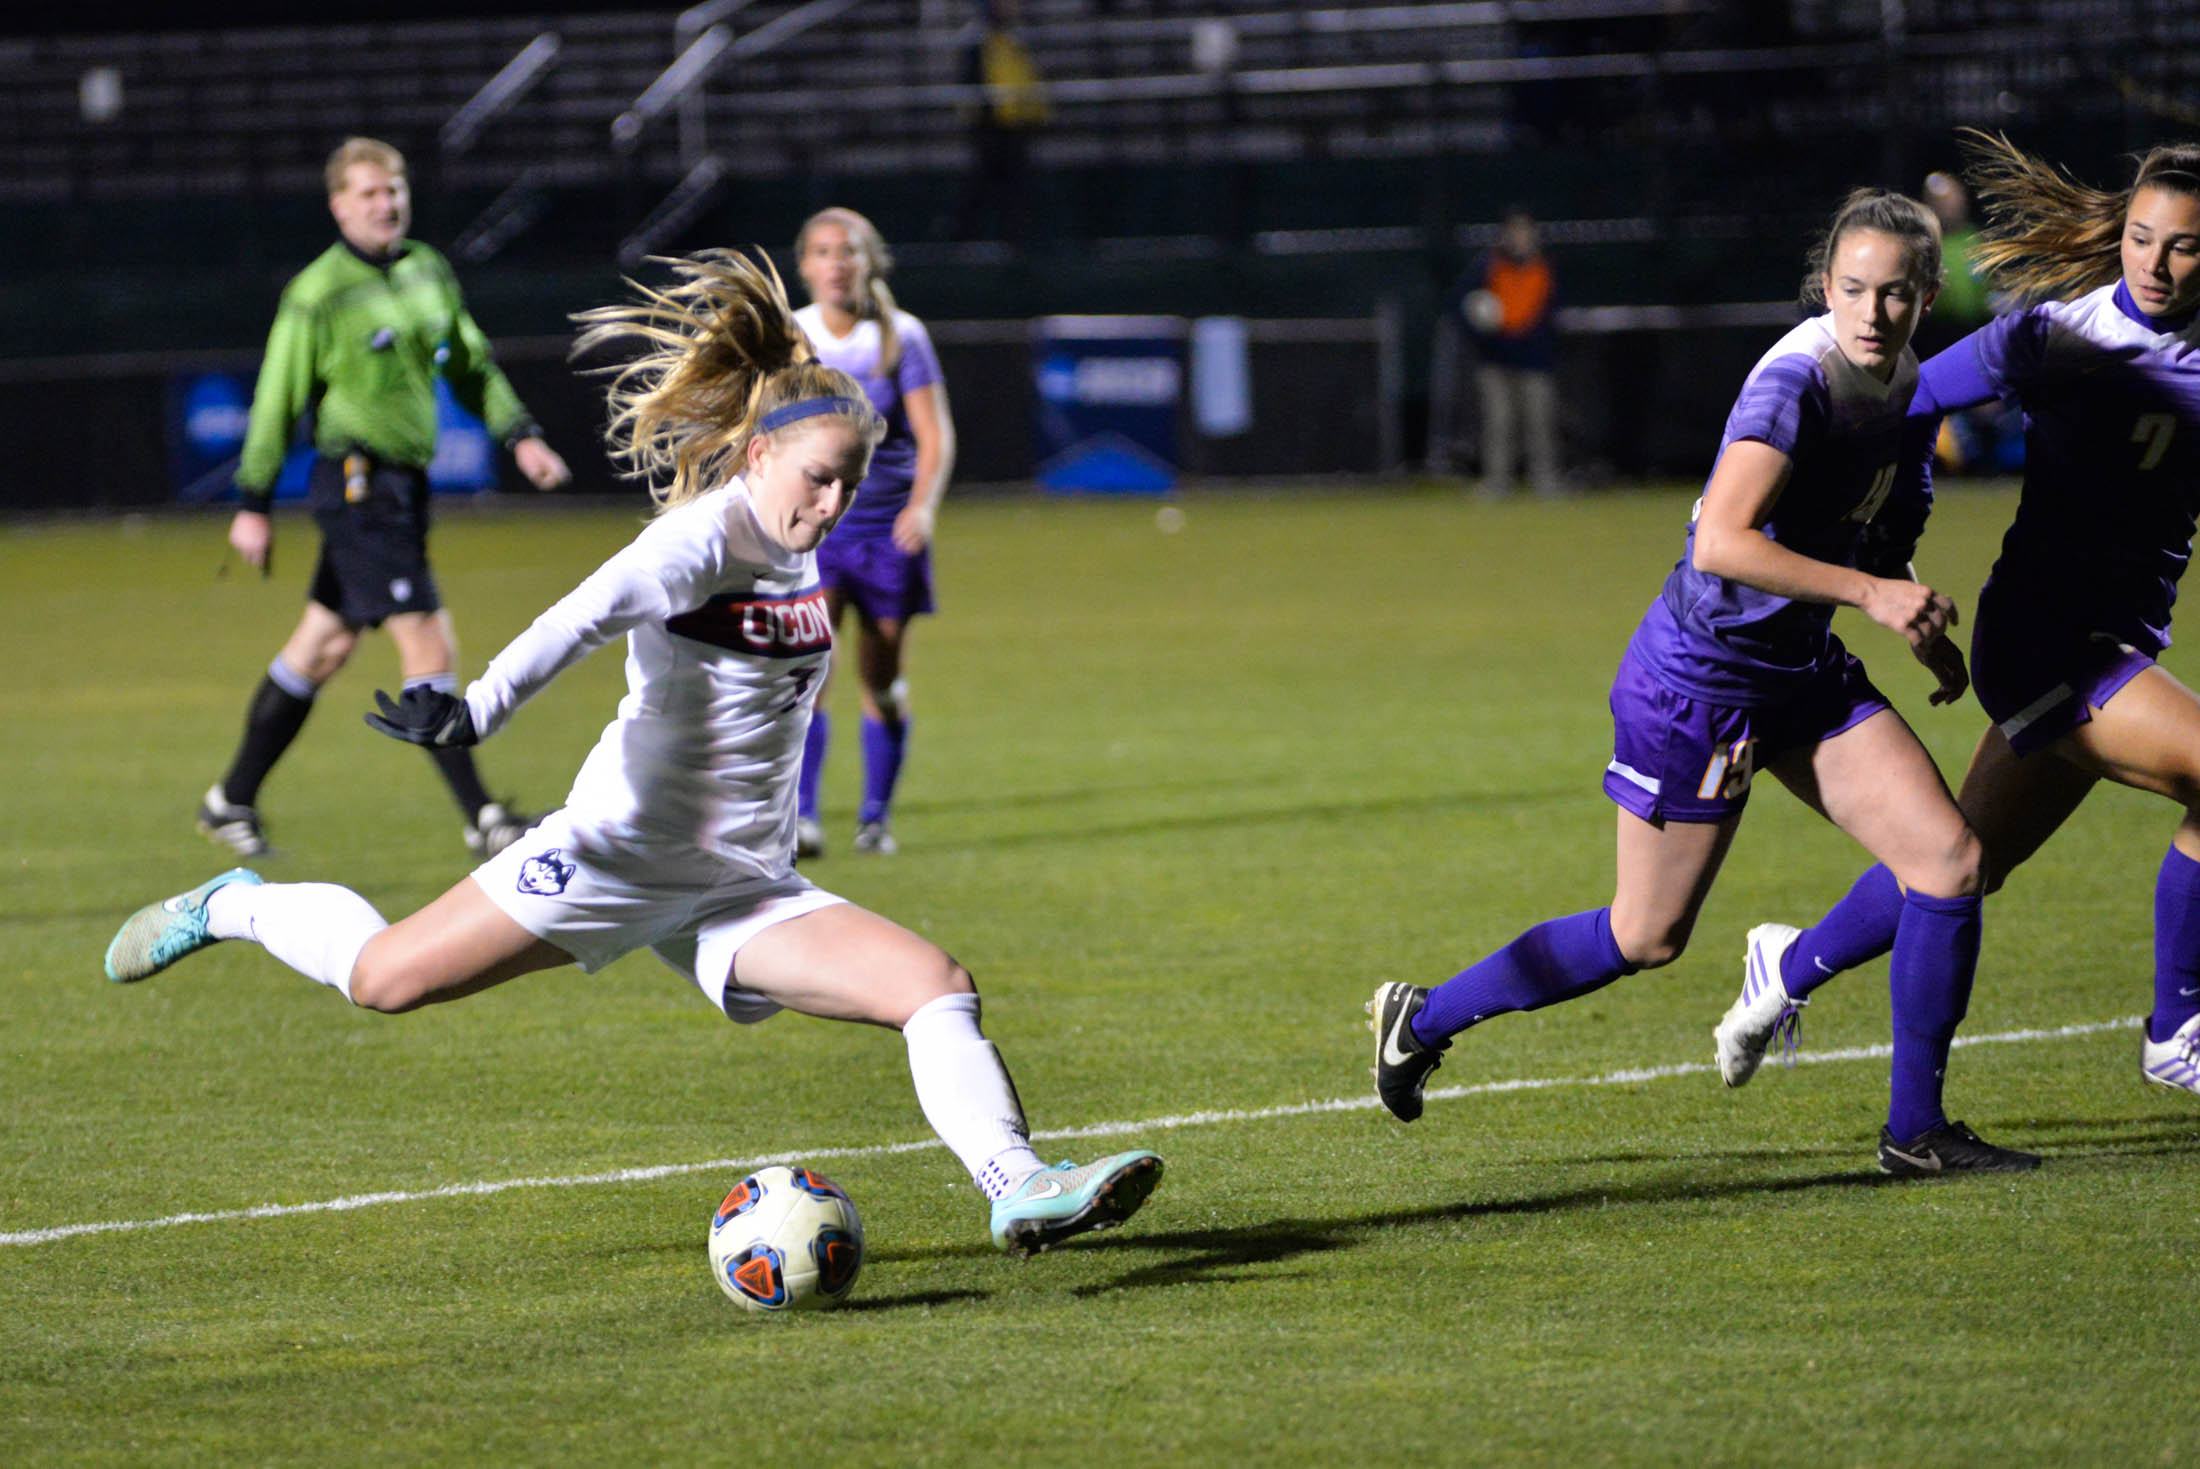 Senior midfielder Maddie Damm (7) fires off a goal during the Huskies 4-2 victory over the UAlbany Great Danes during the first round of the NCAA tournament on Saturday, Nov. 12, 2016. This is Damm's second goal of the season. (Amar Batra/The Daily Campus)